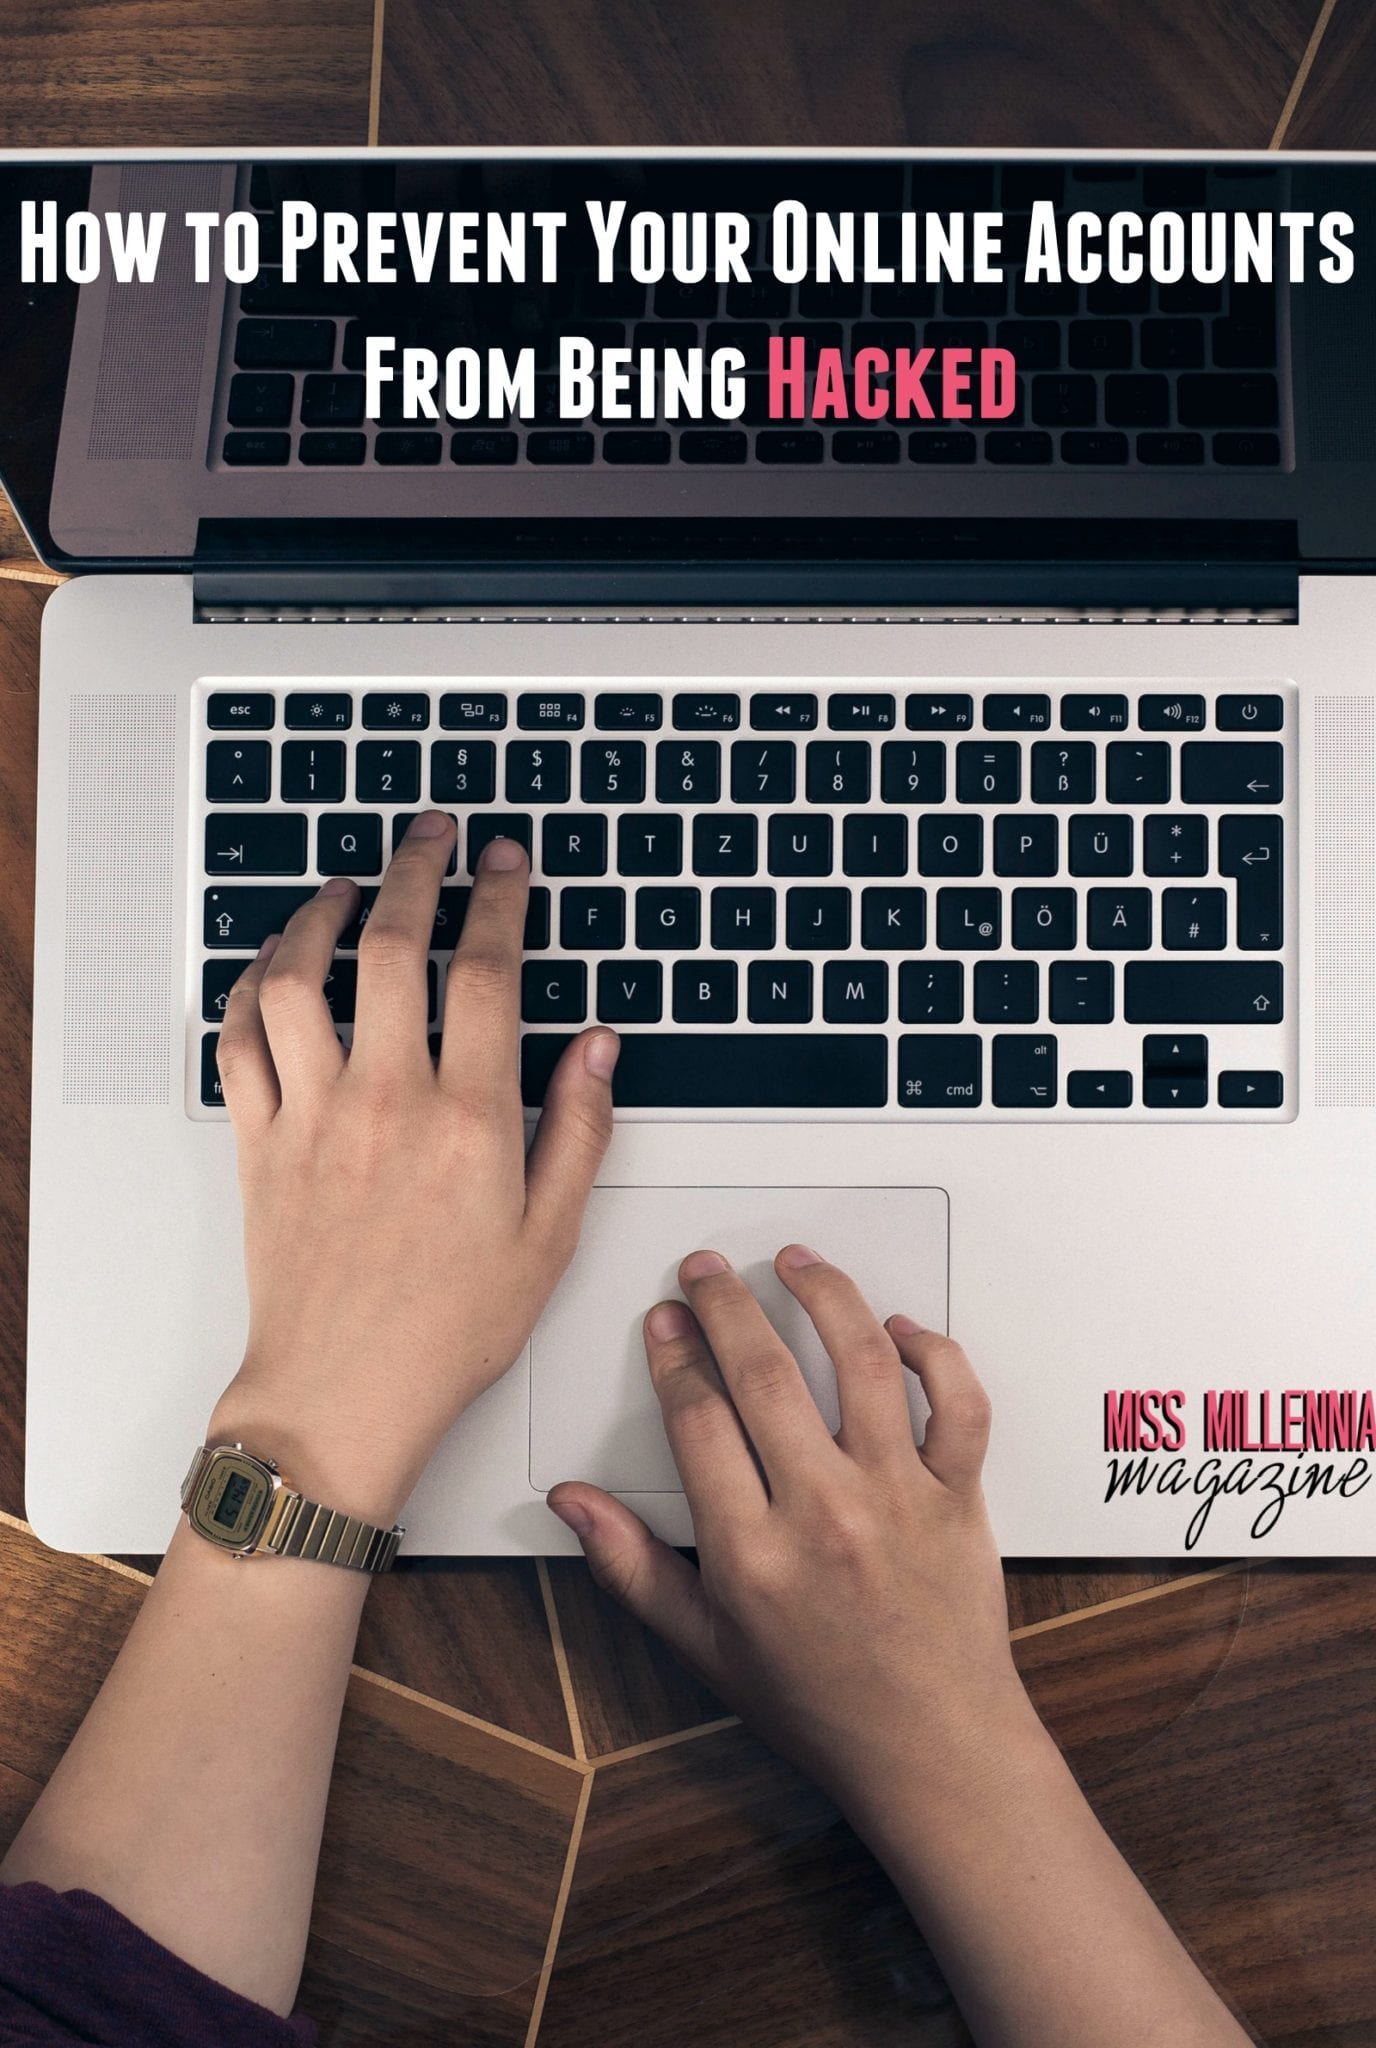 How to Prevent Your Online Accounts From Being Hacked